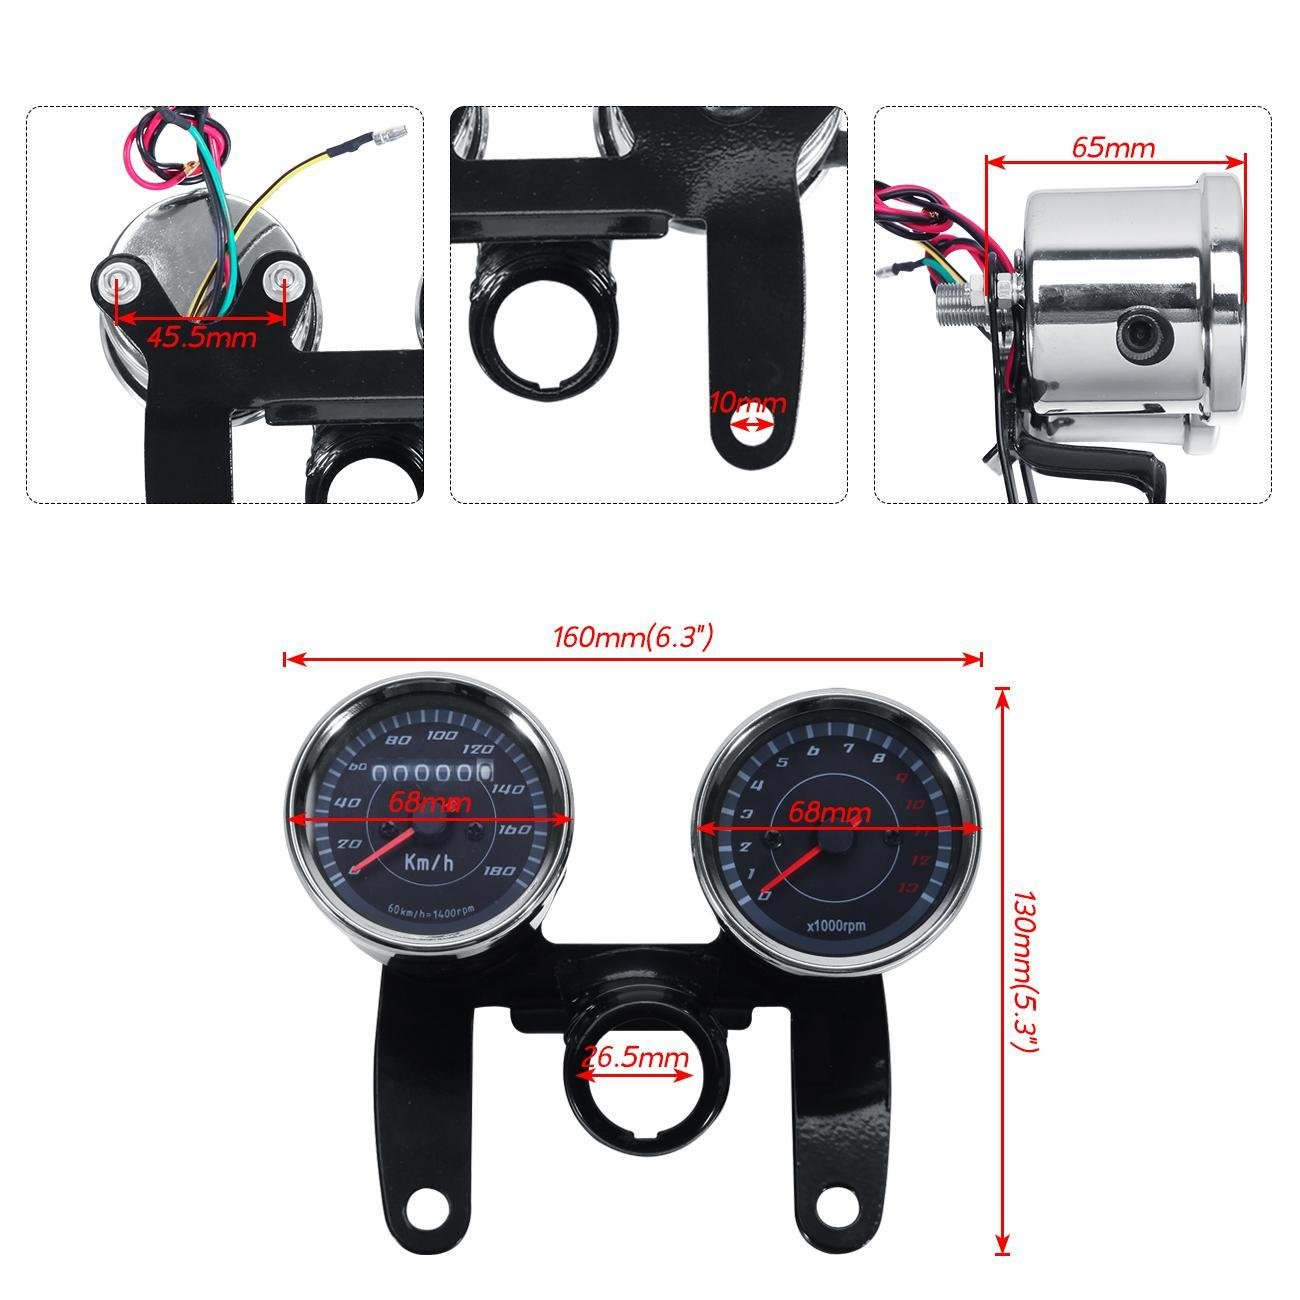 INNOGLOW Motorcycle Backlit Speedometer Tachometer Kit with Bracket,High Capacity Scale,Full-Sweep red Index,0-13000RPM,0-180km/h by INNOGLOW (Image #1)